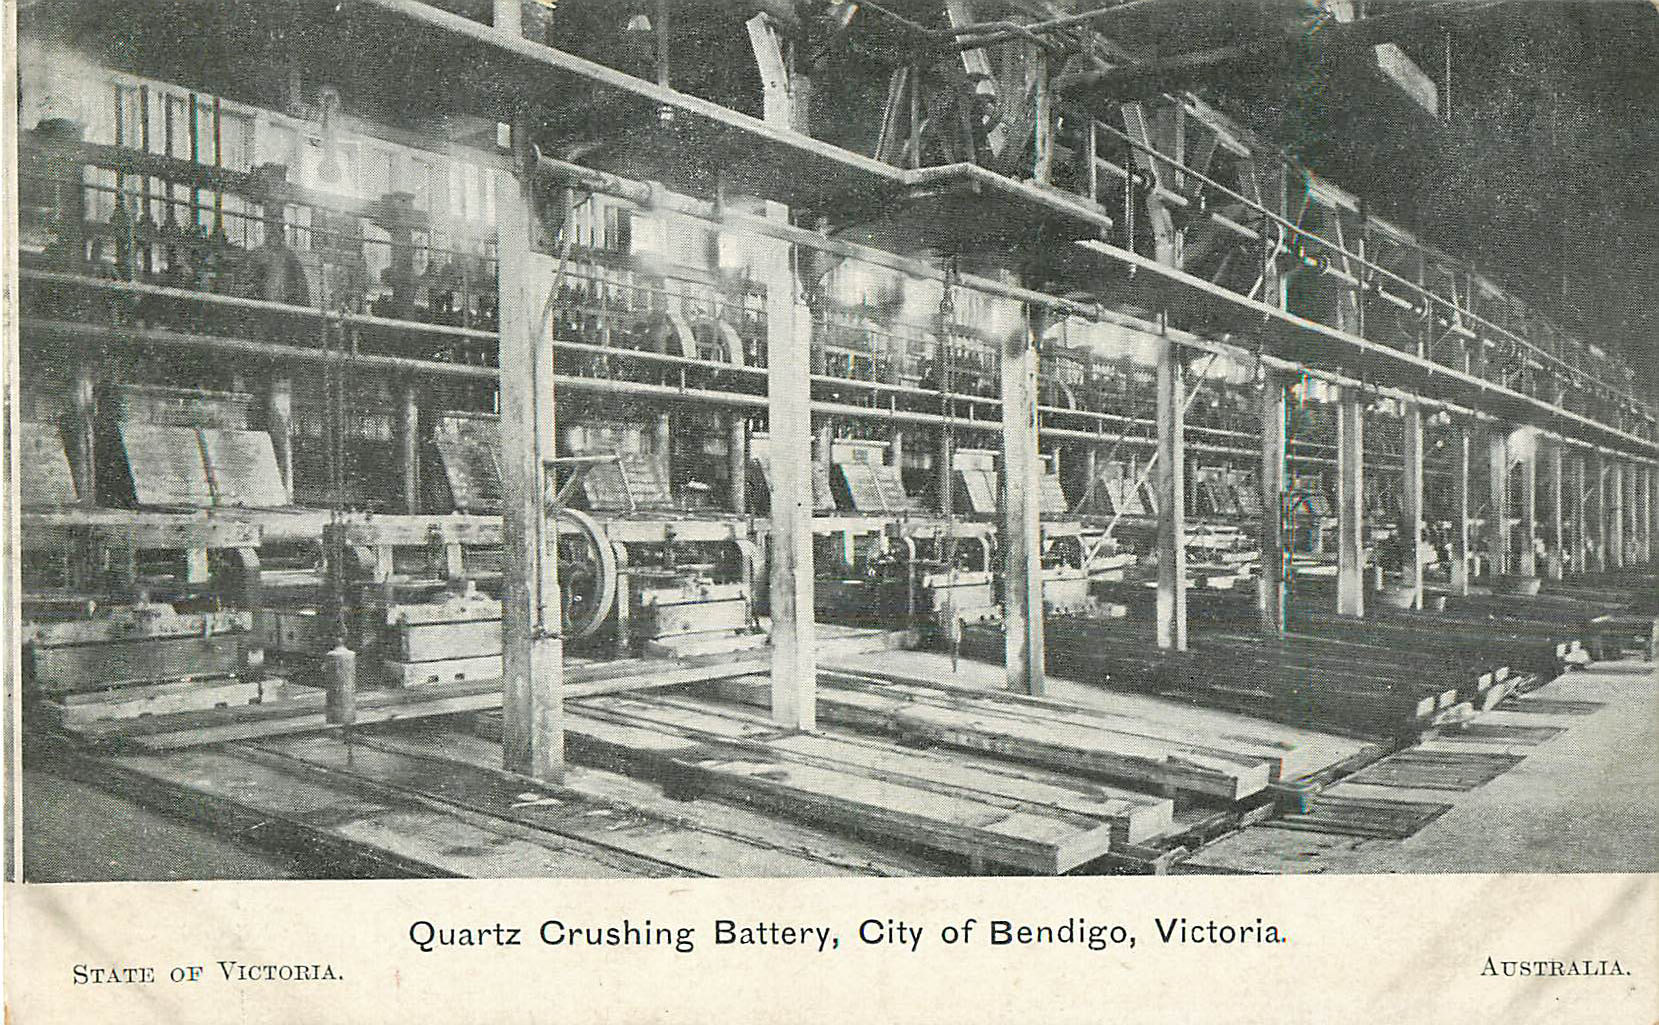 Quartz Crushing Batter, City of Bendigo, Victoria - Australia